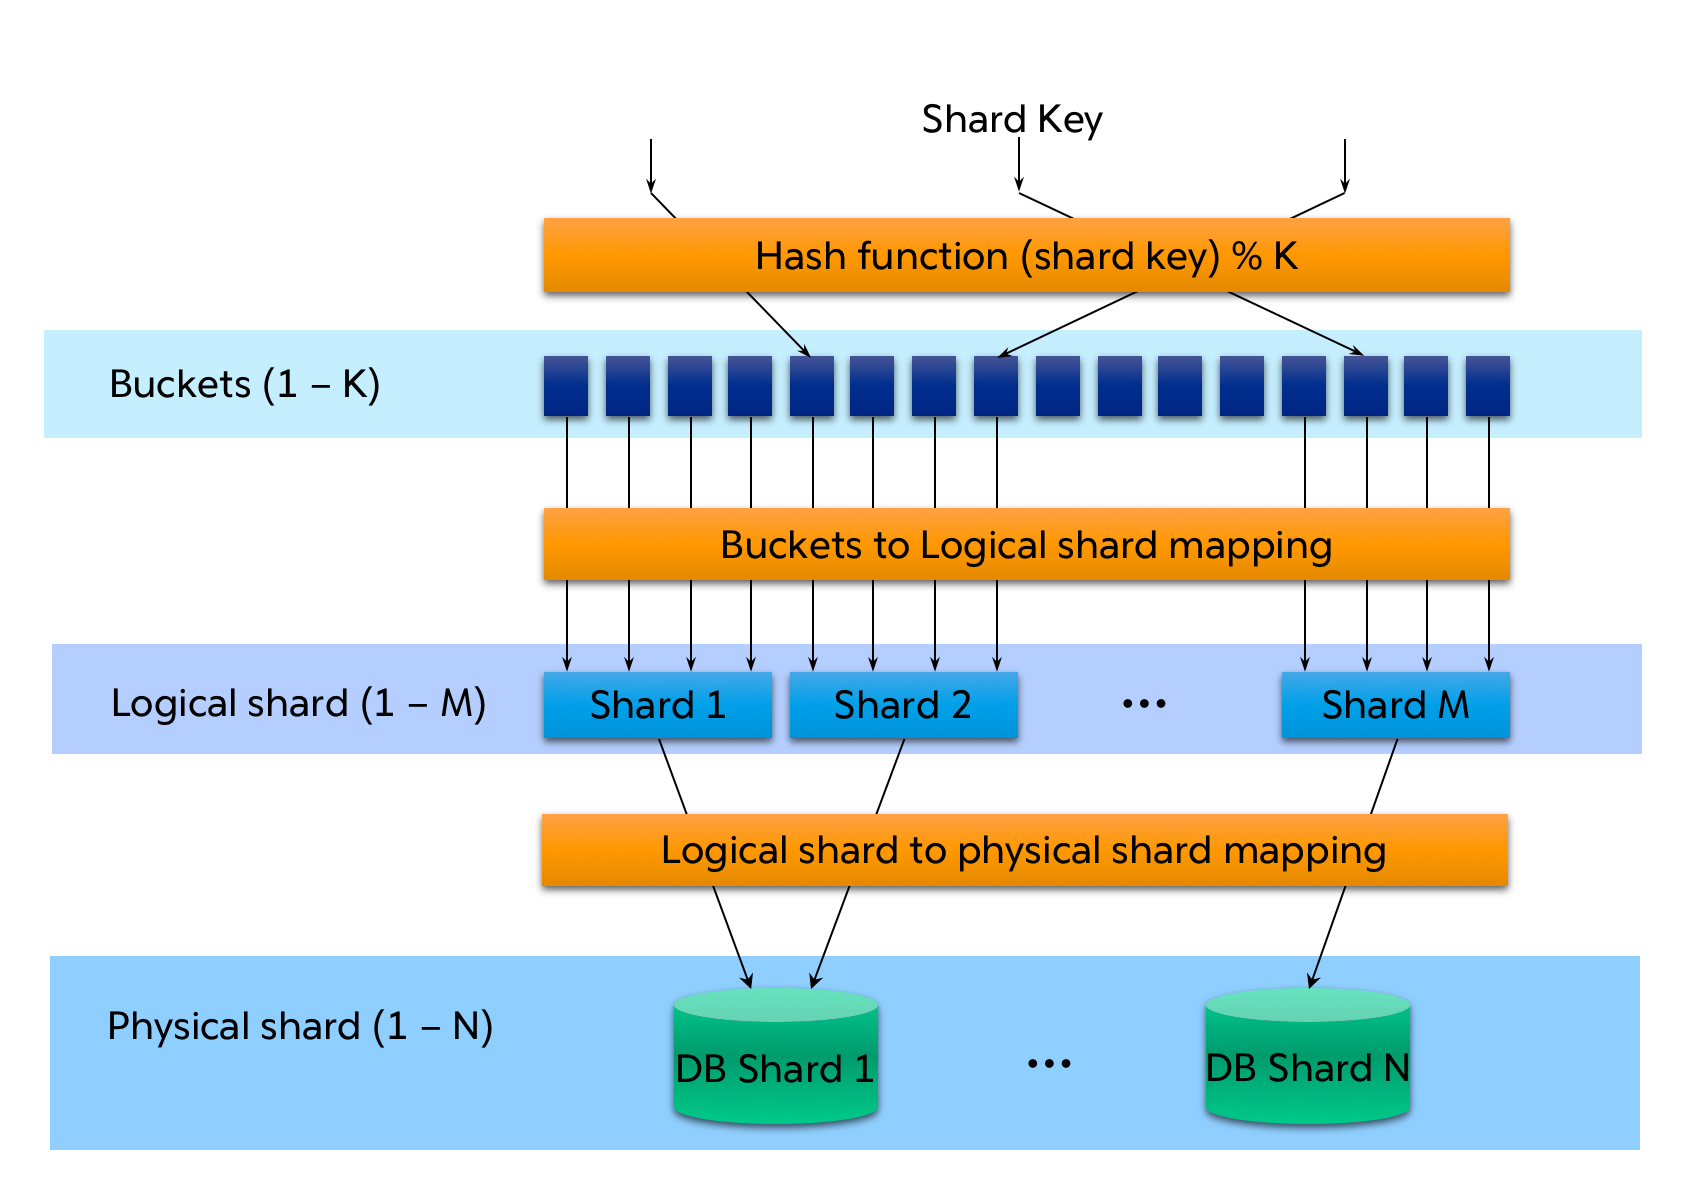 Application Design Considerations for Sharding High Volume